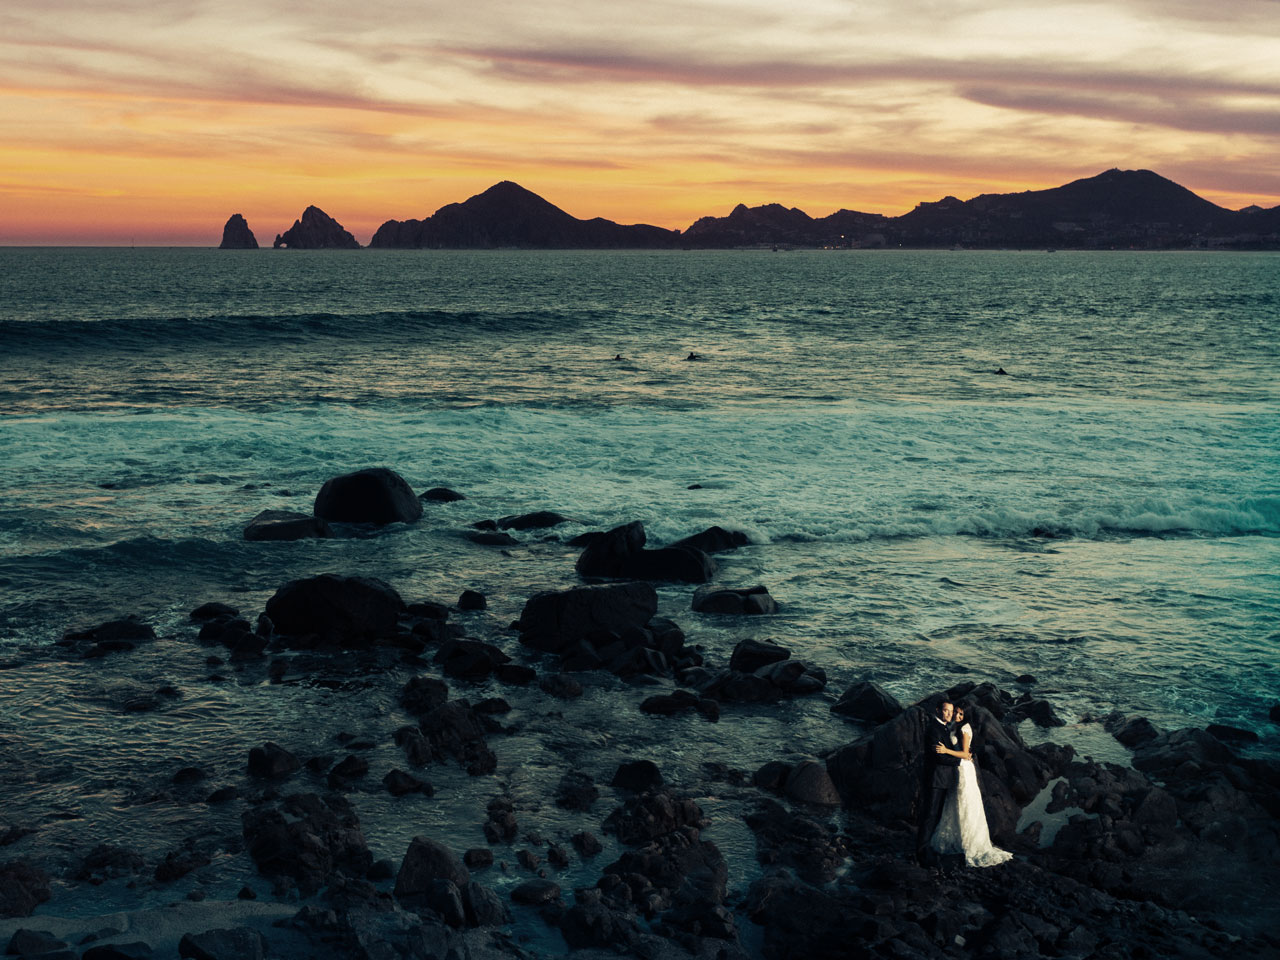 An aerial shot of the wedding couple embracing on the rocky beach